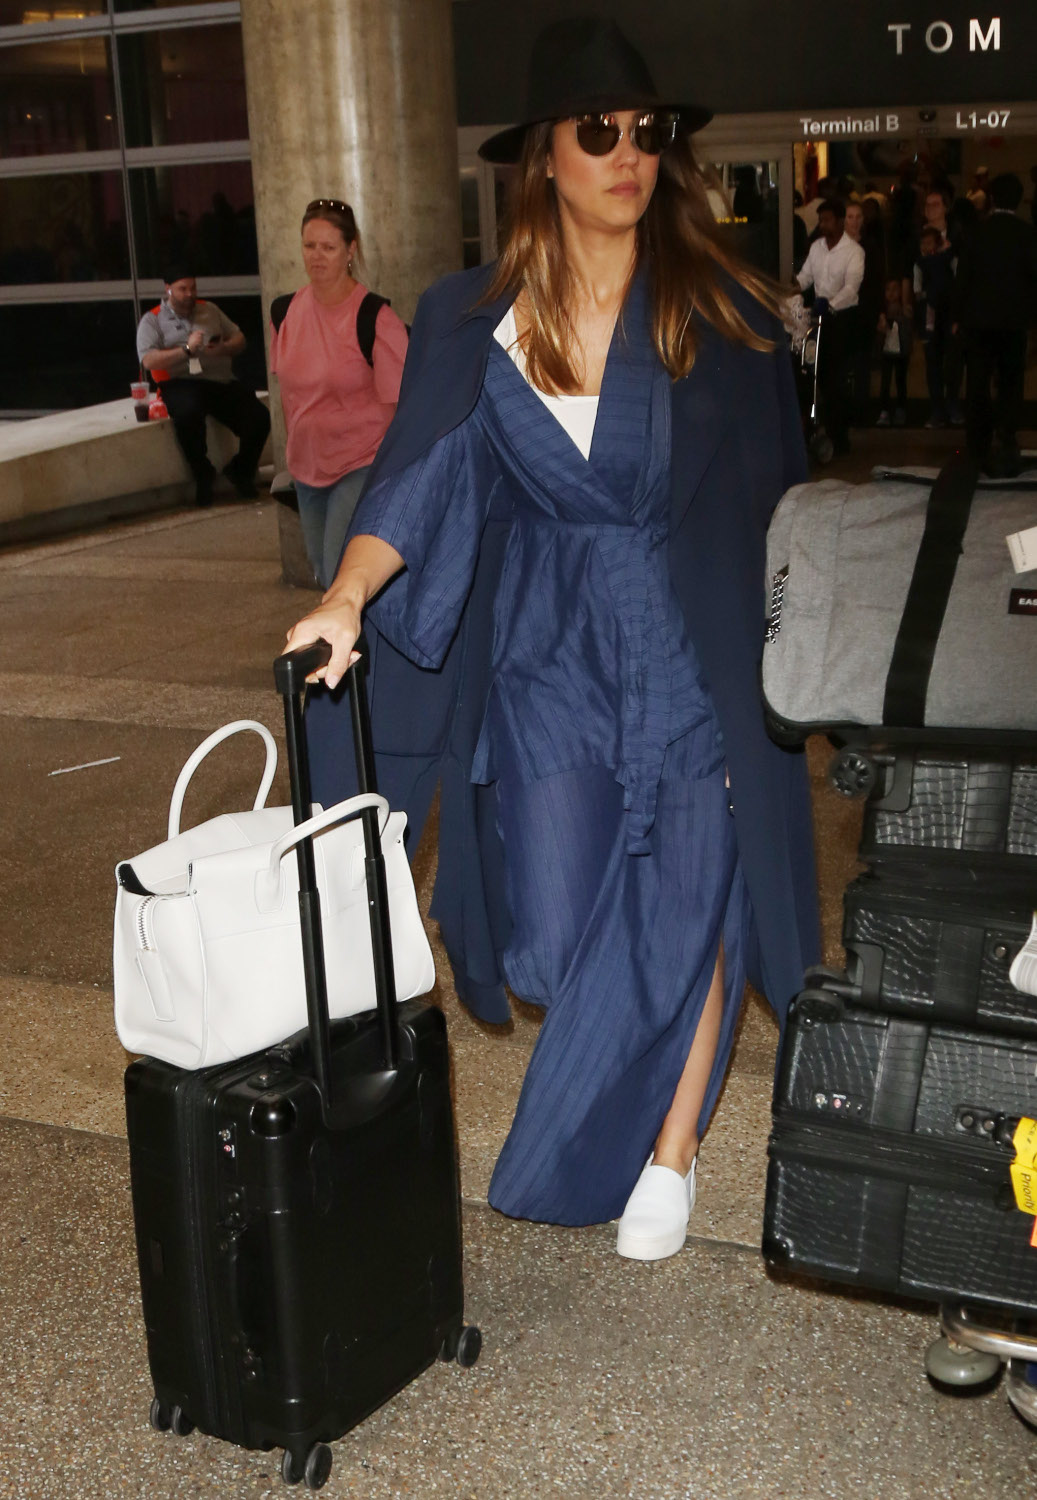 US: Jessica Alba arriving at the Los Angeles International Airport - LAX  Pictured: Jessica Alba Ref: SPL5003876 140618 NON-EXCLUSIVE Picture by: USDA / SplashNews.com  Splash News and Pictures Los Angeles: 310-821-2666 New York: 212-619-2666 London: 0207 644 7656 Milan: +39 02 4399 8577 photodesk@splashnews.com  World Rights, No France Rights, No Poland Rights